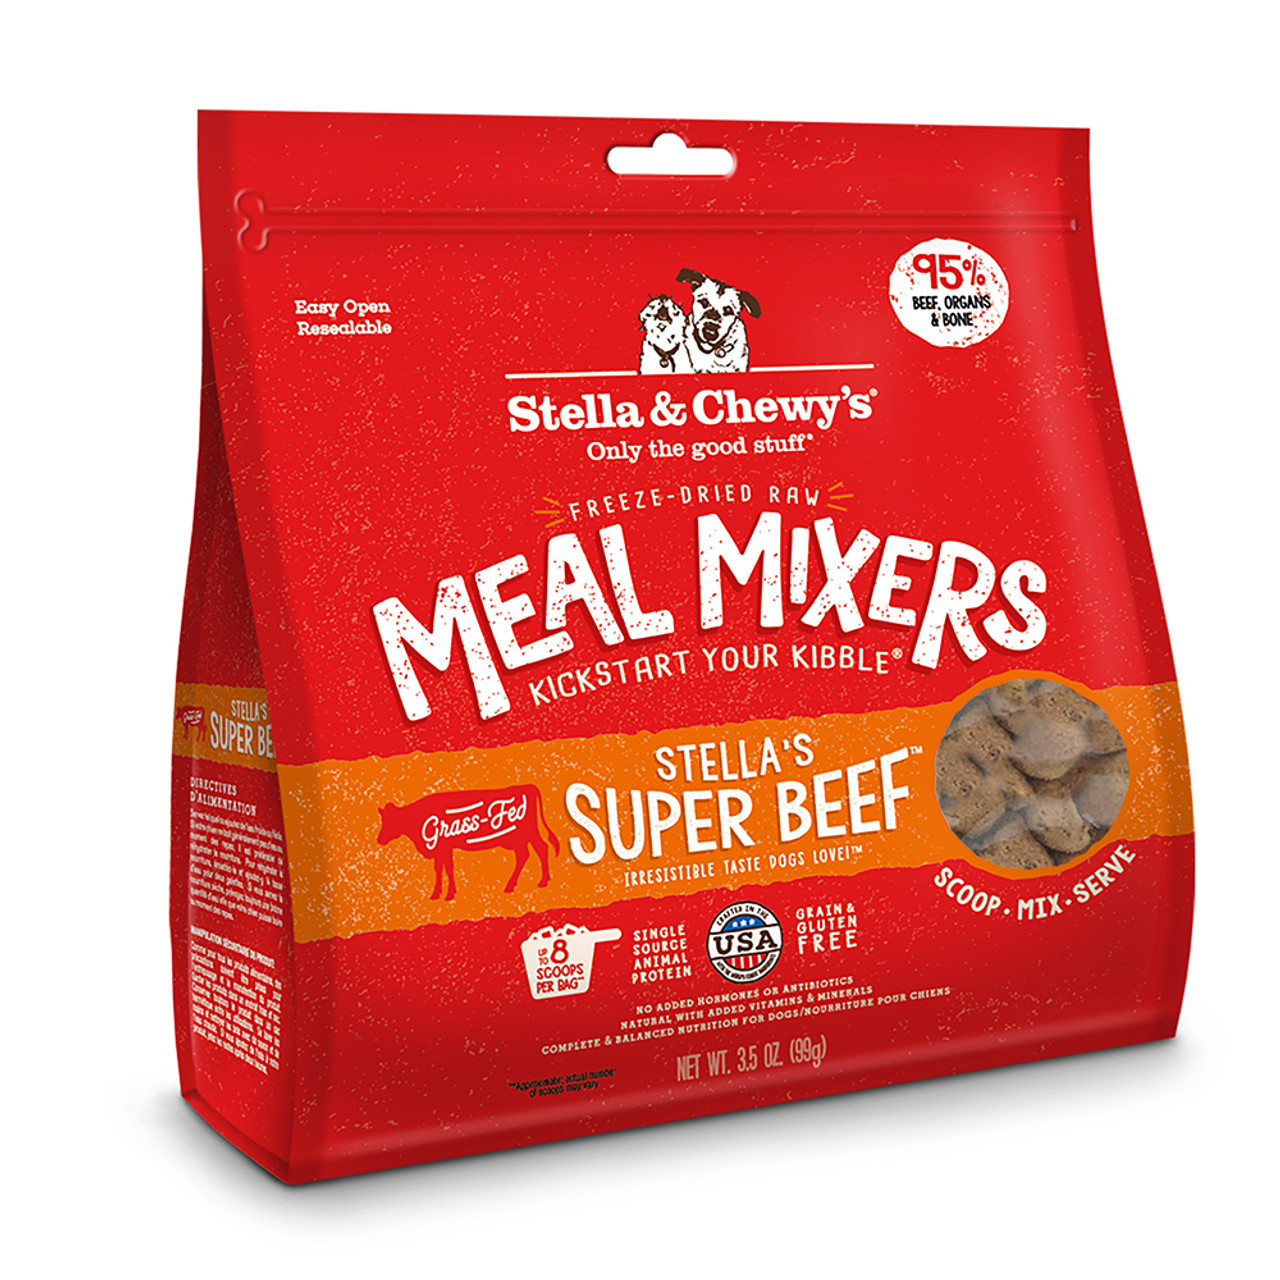 Stella & Chewy's Super Beef Freeze-Dried Raw Dog Meal Mixers